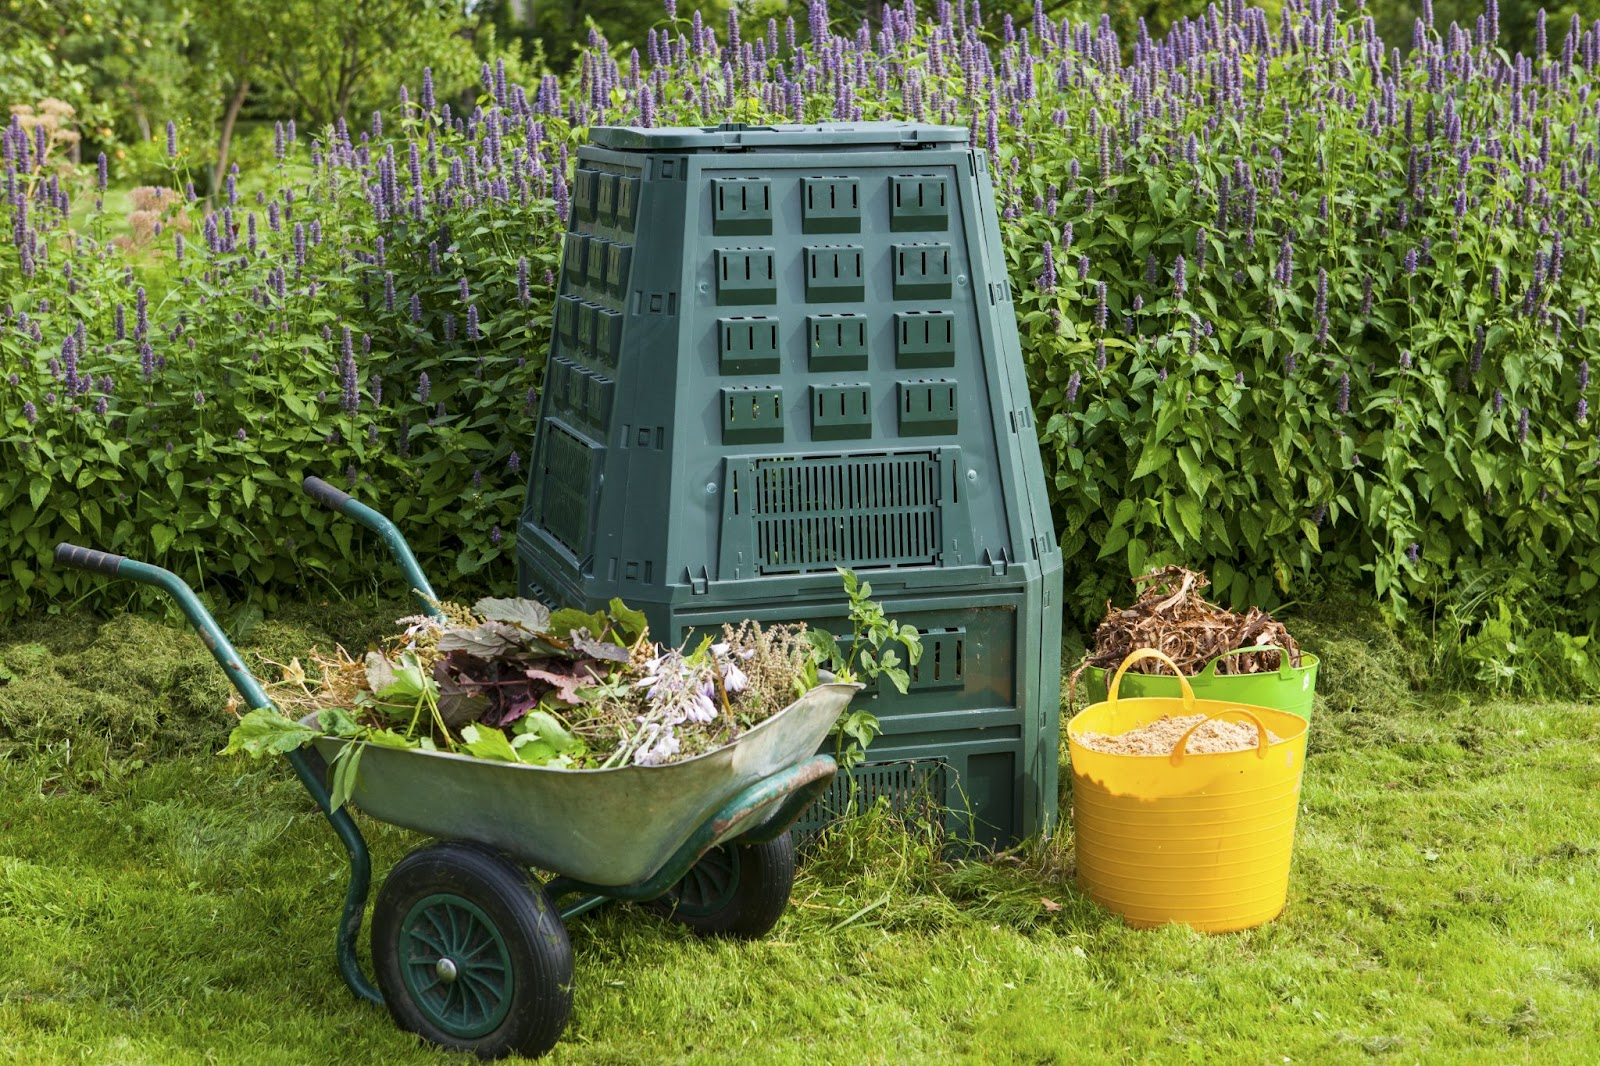 Image of a large compost bin in a garden with buckets of yard waste surrounding it.